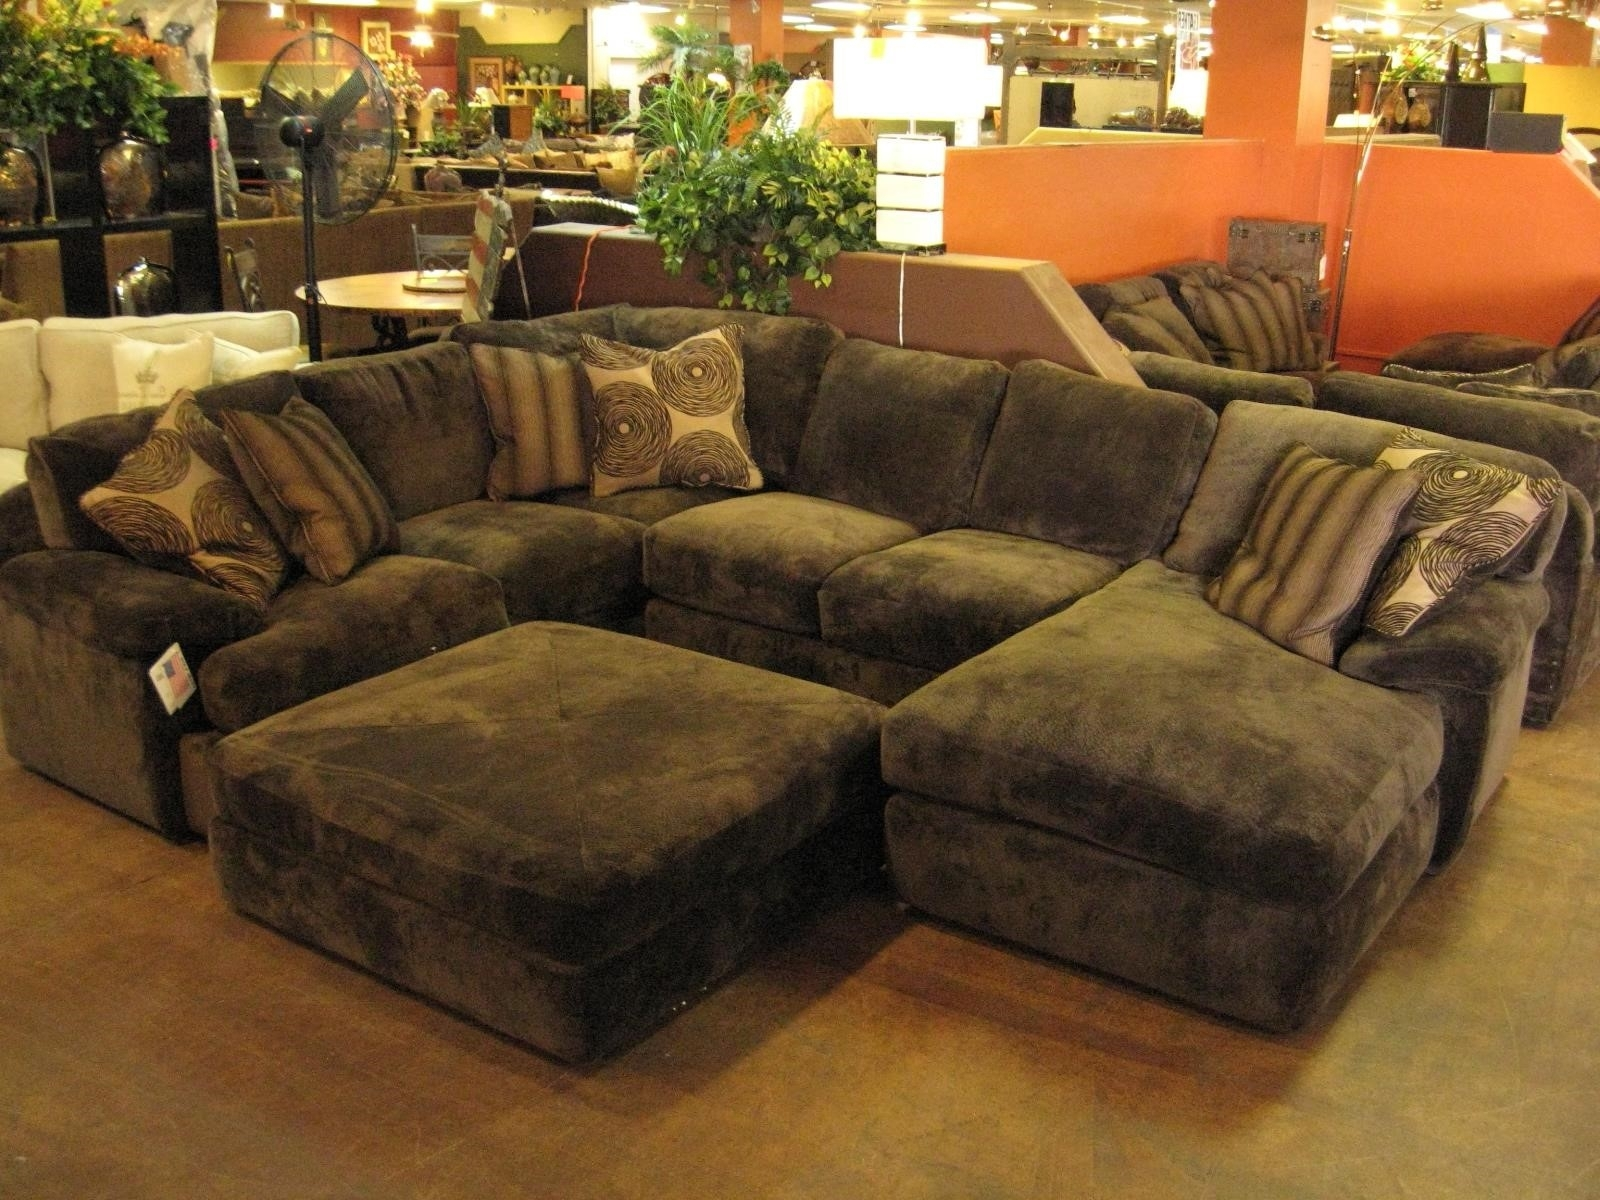 Sectional Sofas Large Sofa With Ottoman Regard To Idea 11 With Sofas With Large Ottoman (View 8 of 10)